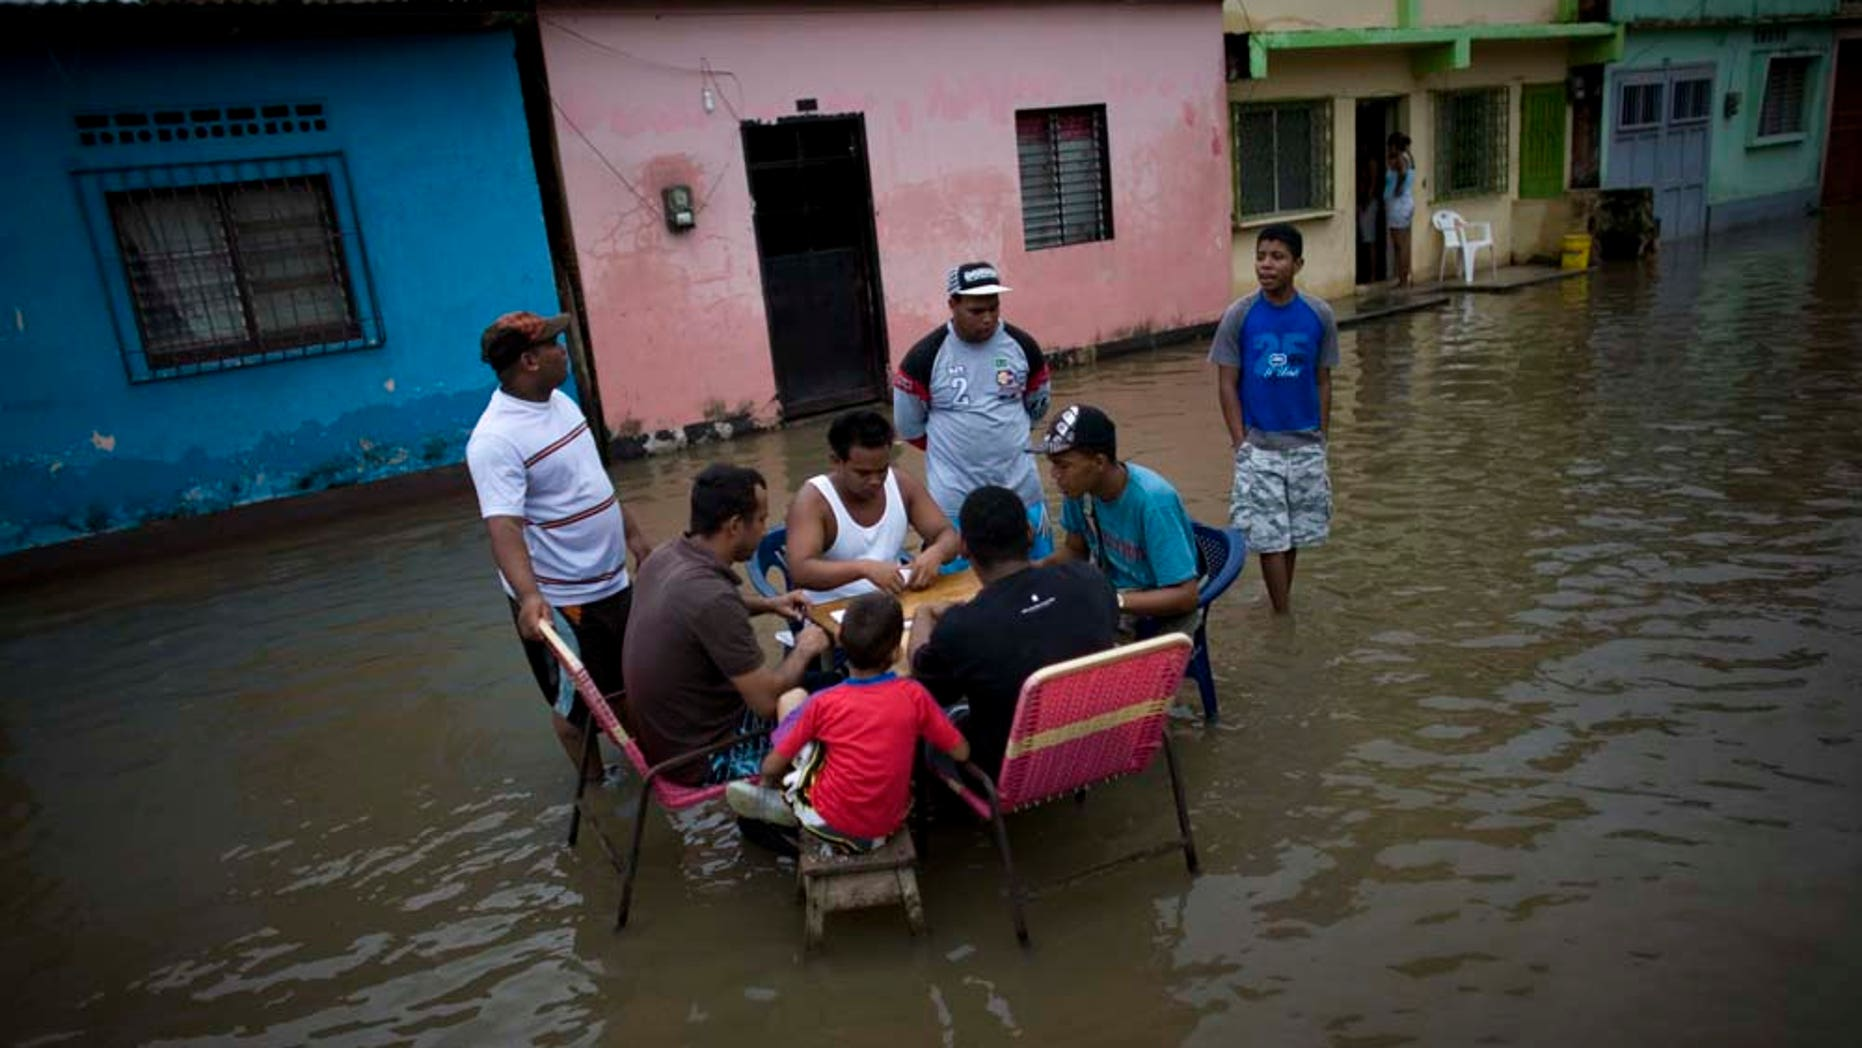 People play dominos in a flooded street in Higuerote, Venezuela, Tuesday Nov. 30, 2010.  Flooding and landslides unleashed by torrential rains have killed at least 30 people in Venezuela and forced thousands from their homes.  (AP Photo/Ariana Cubillos)